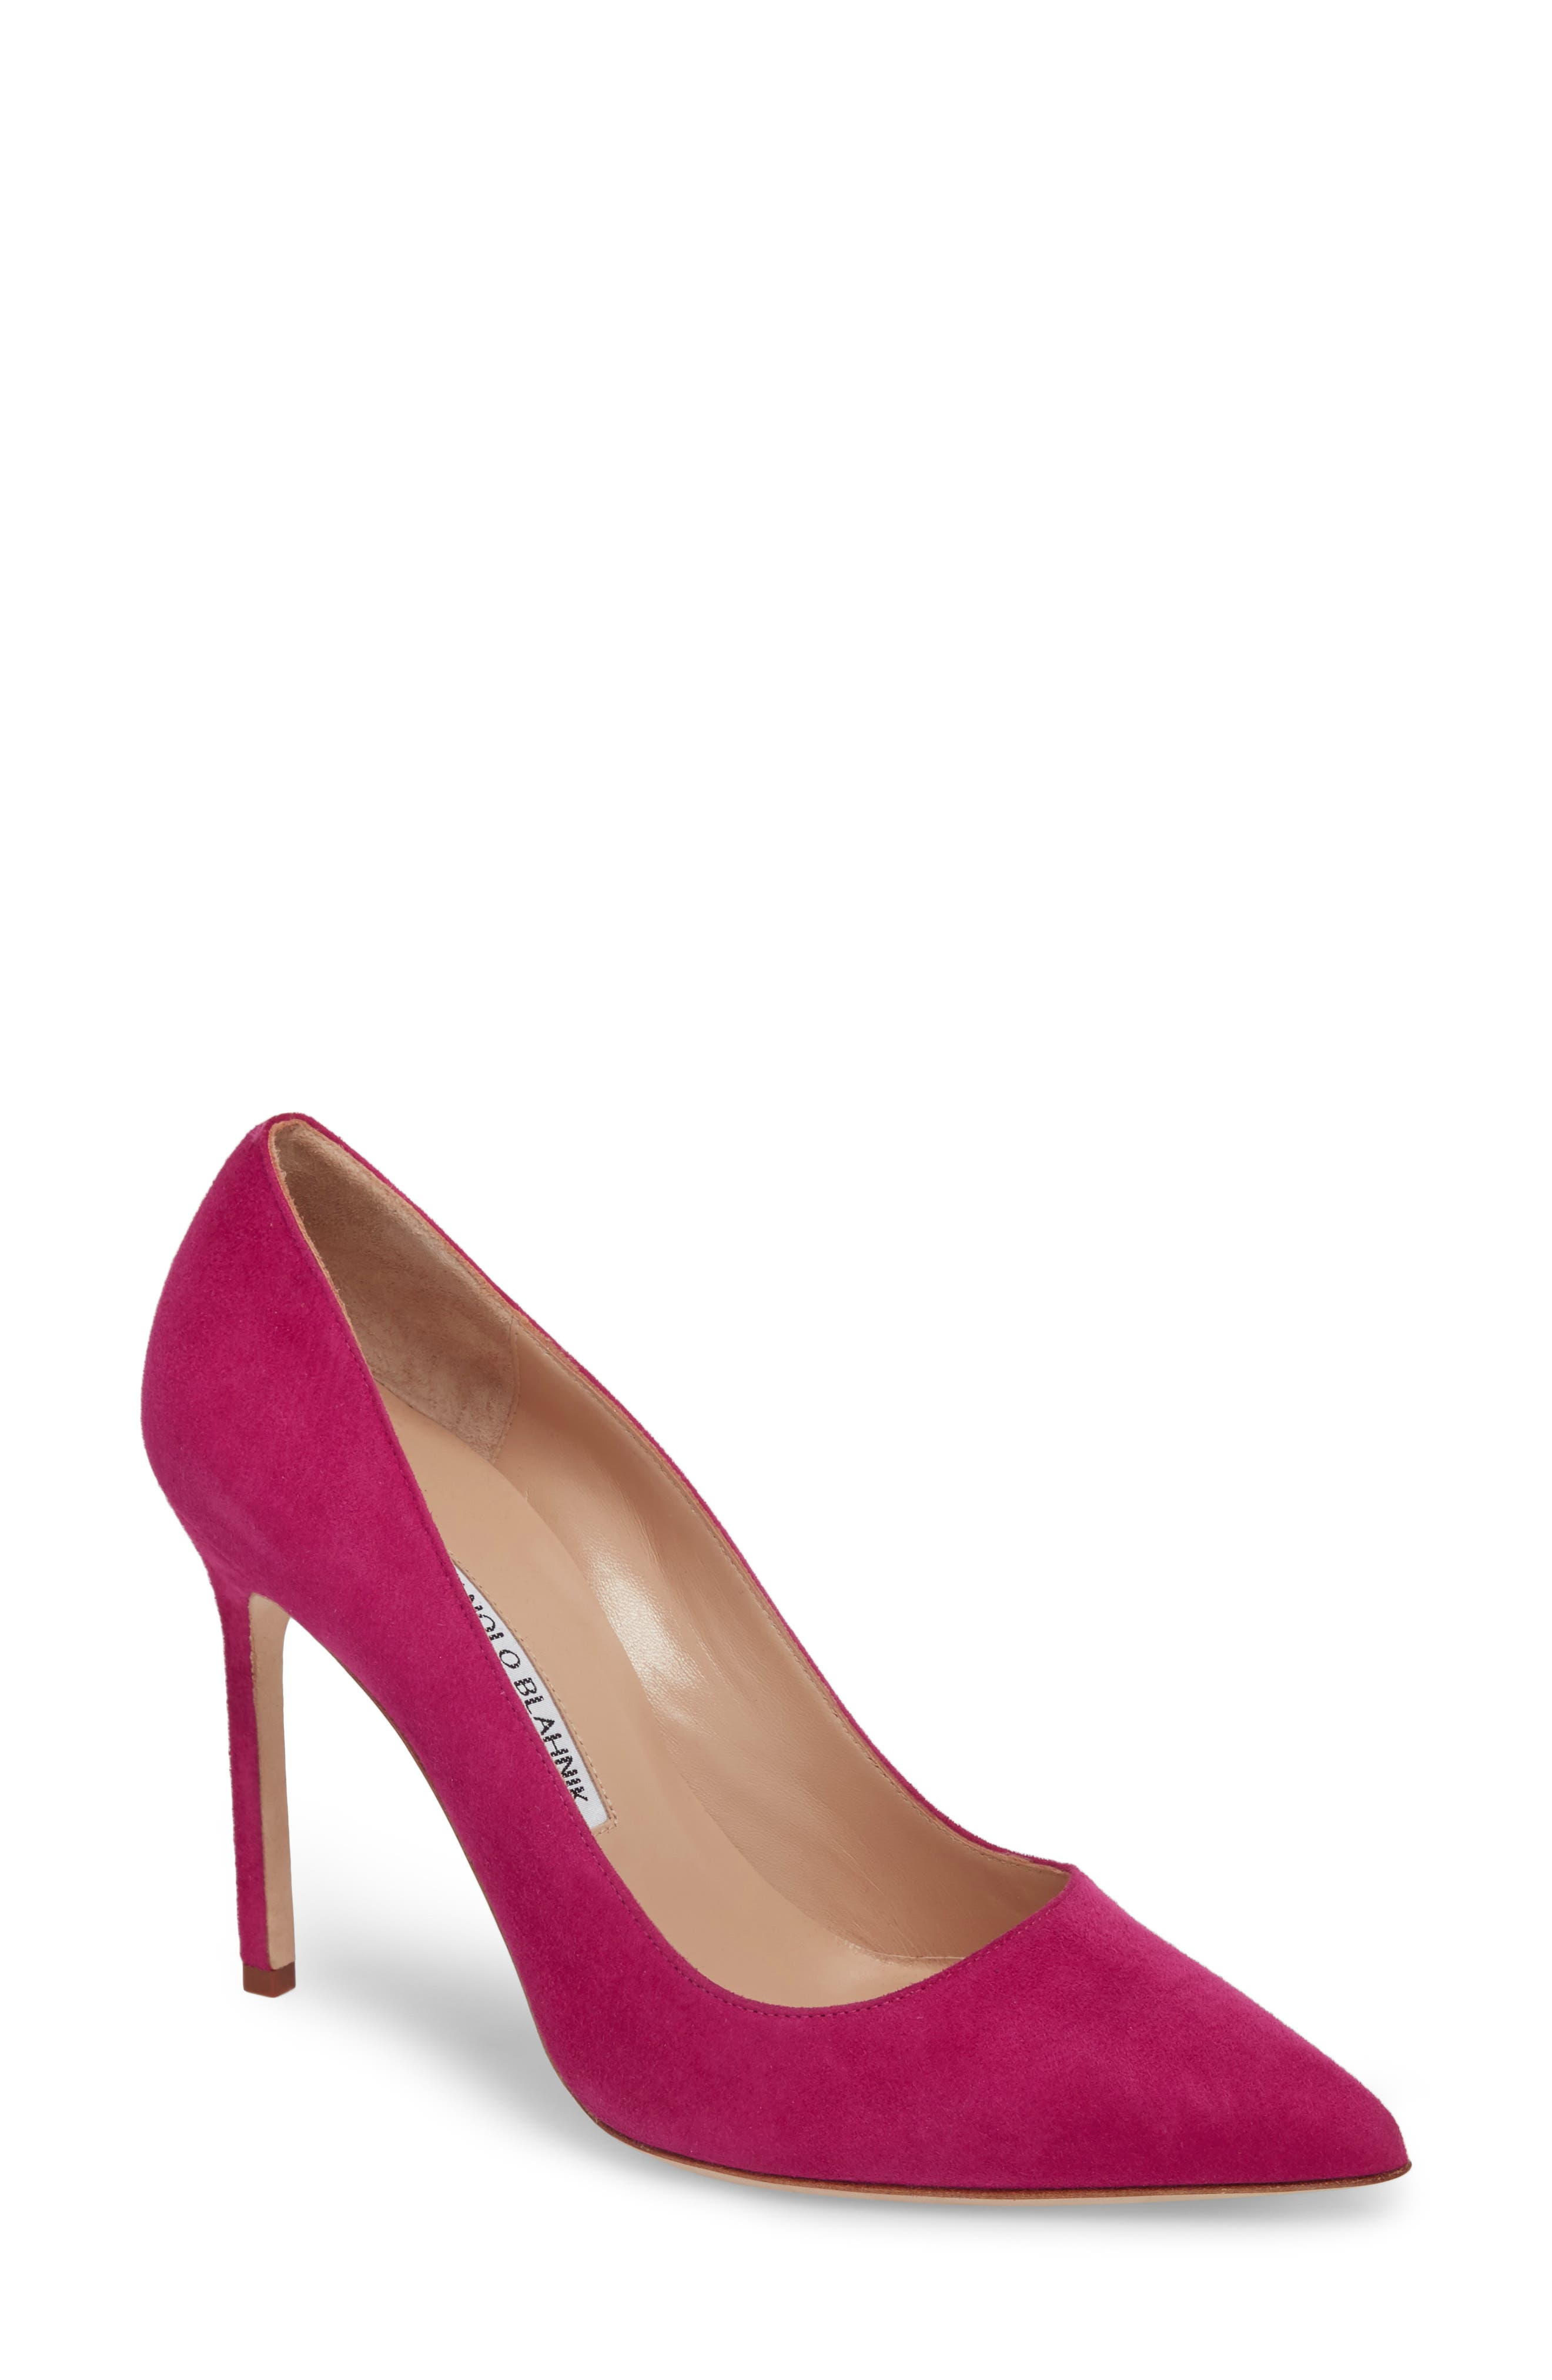 'BB' Pointy Toe Pump,                             Main thumbnail 1, color,                             Magenta